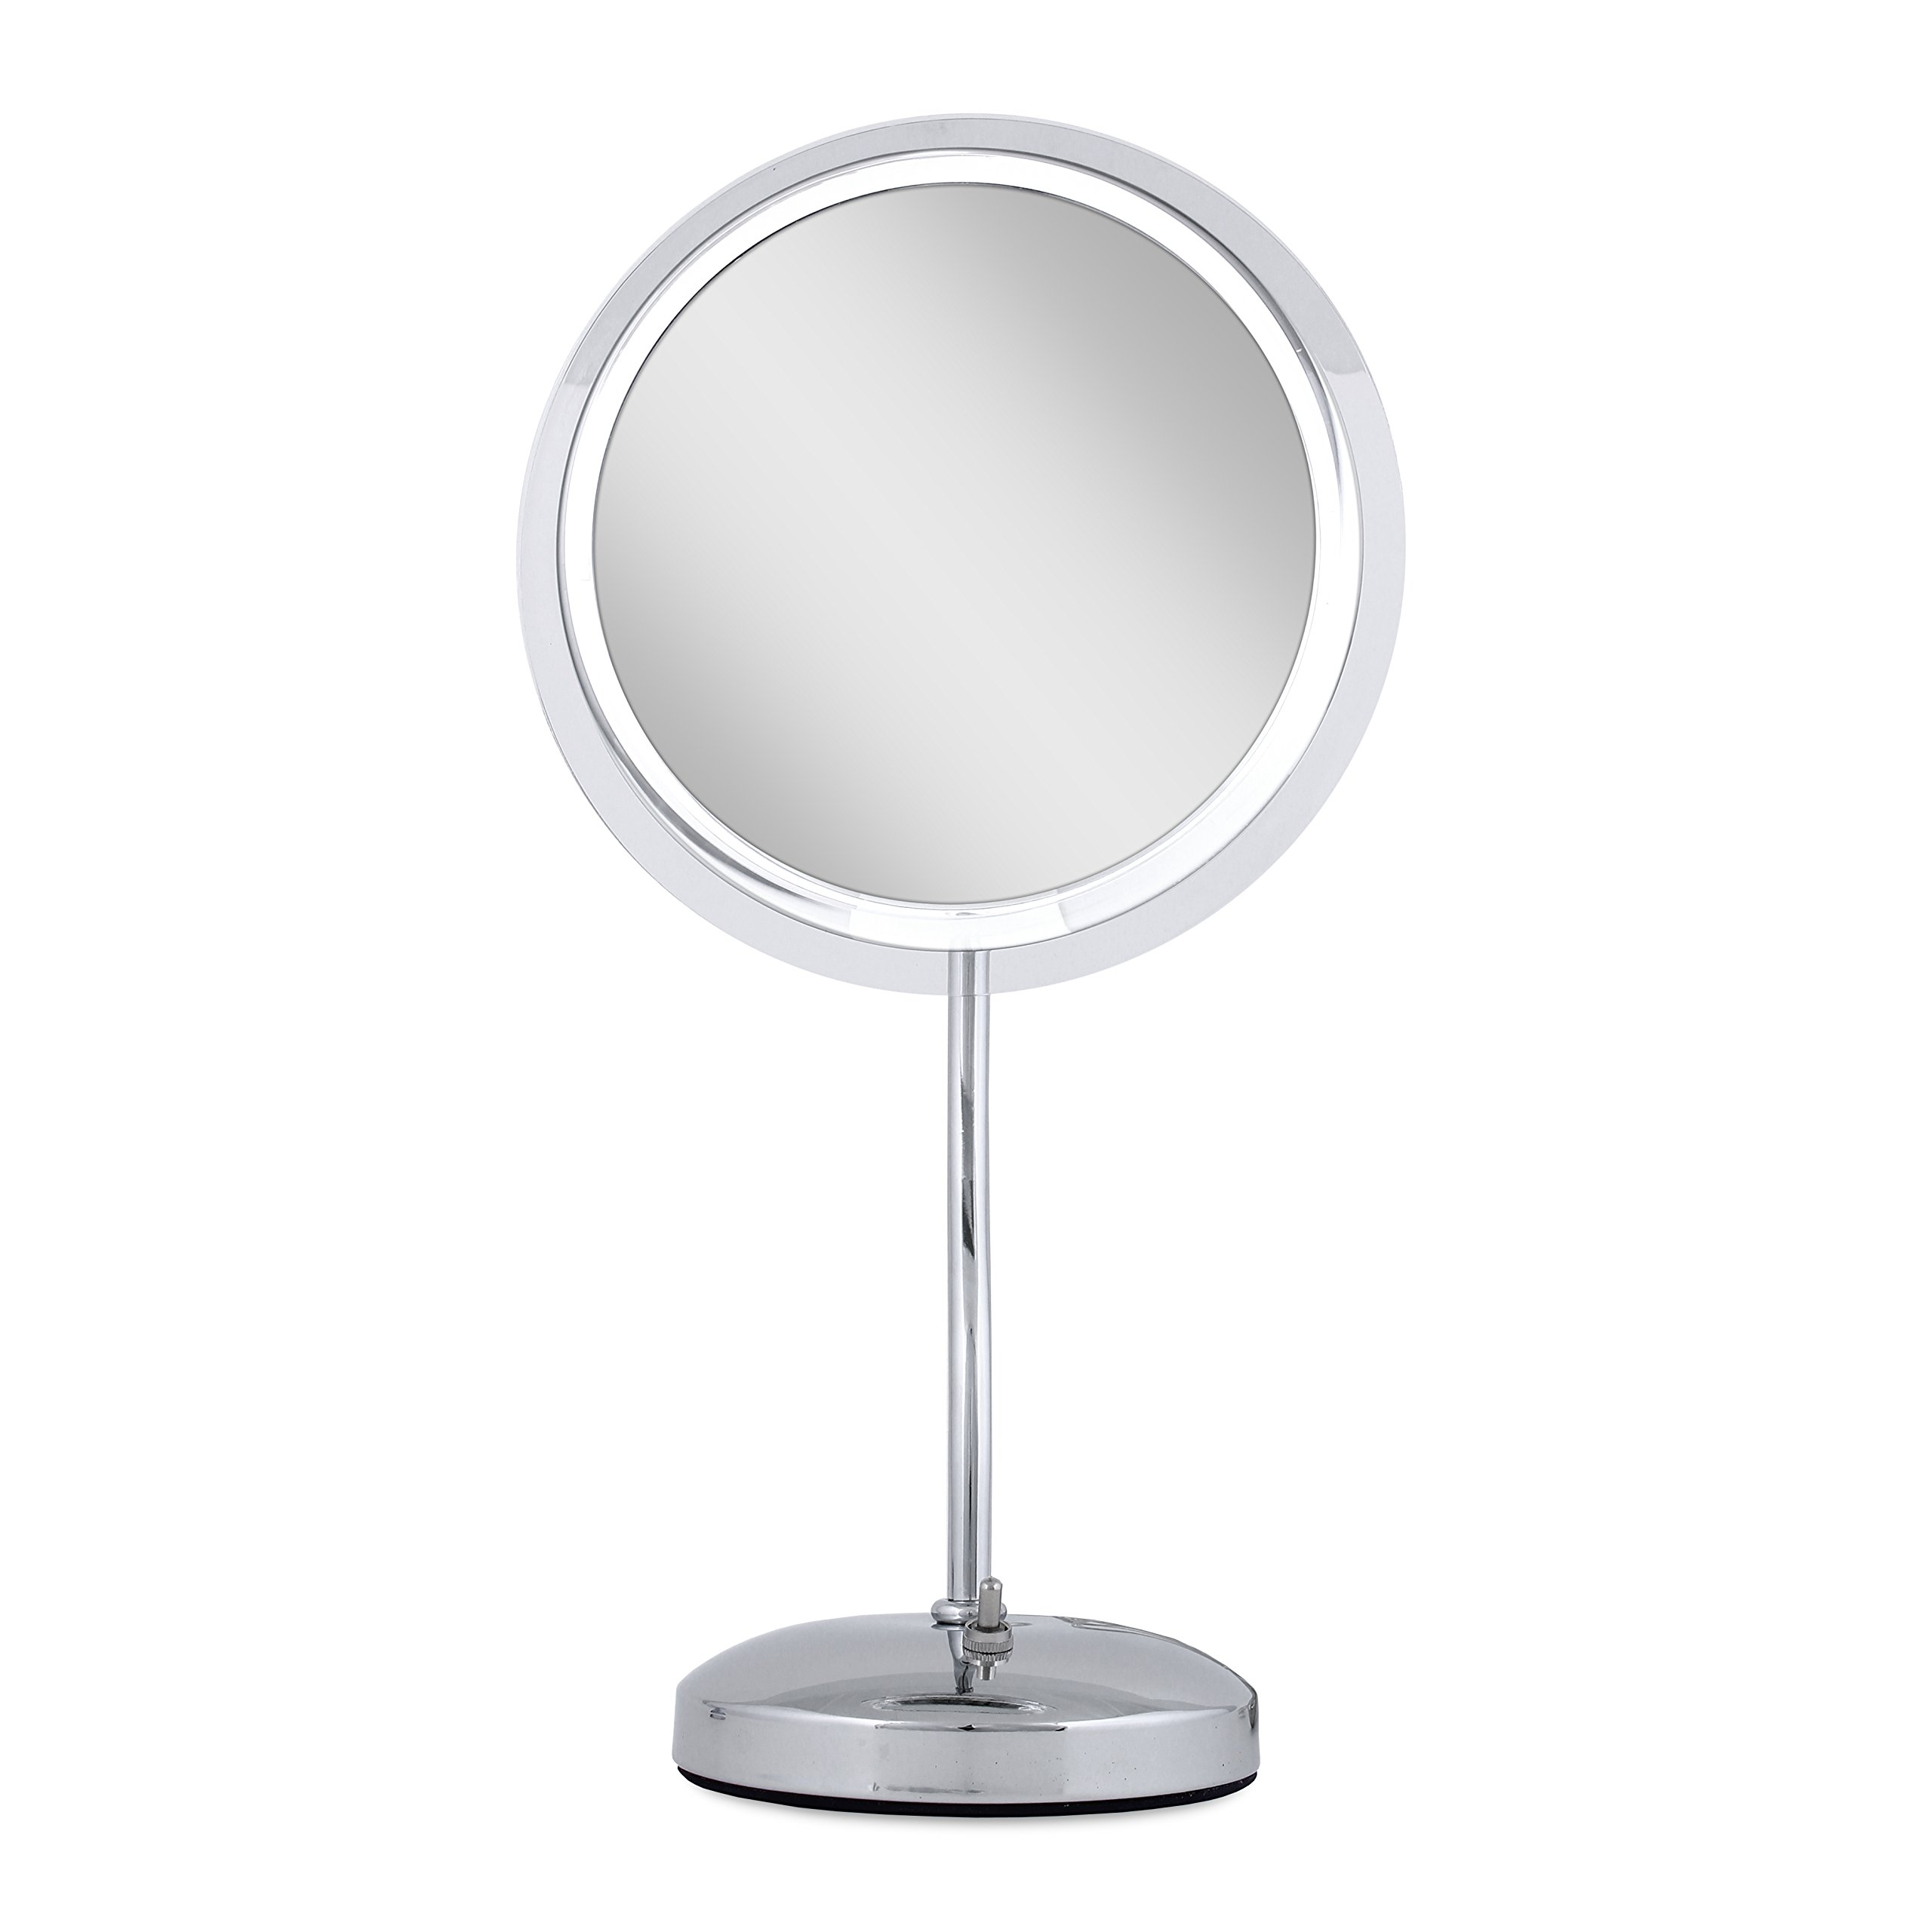 Zadro S Neck Pedestal Mirror In Chrome with 7X Magnification, Chrome Finish, 9 Inch